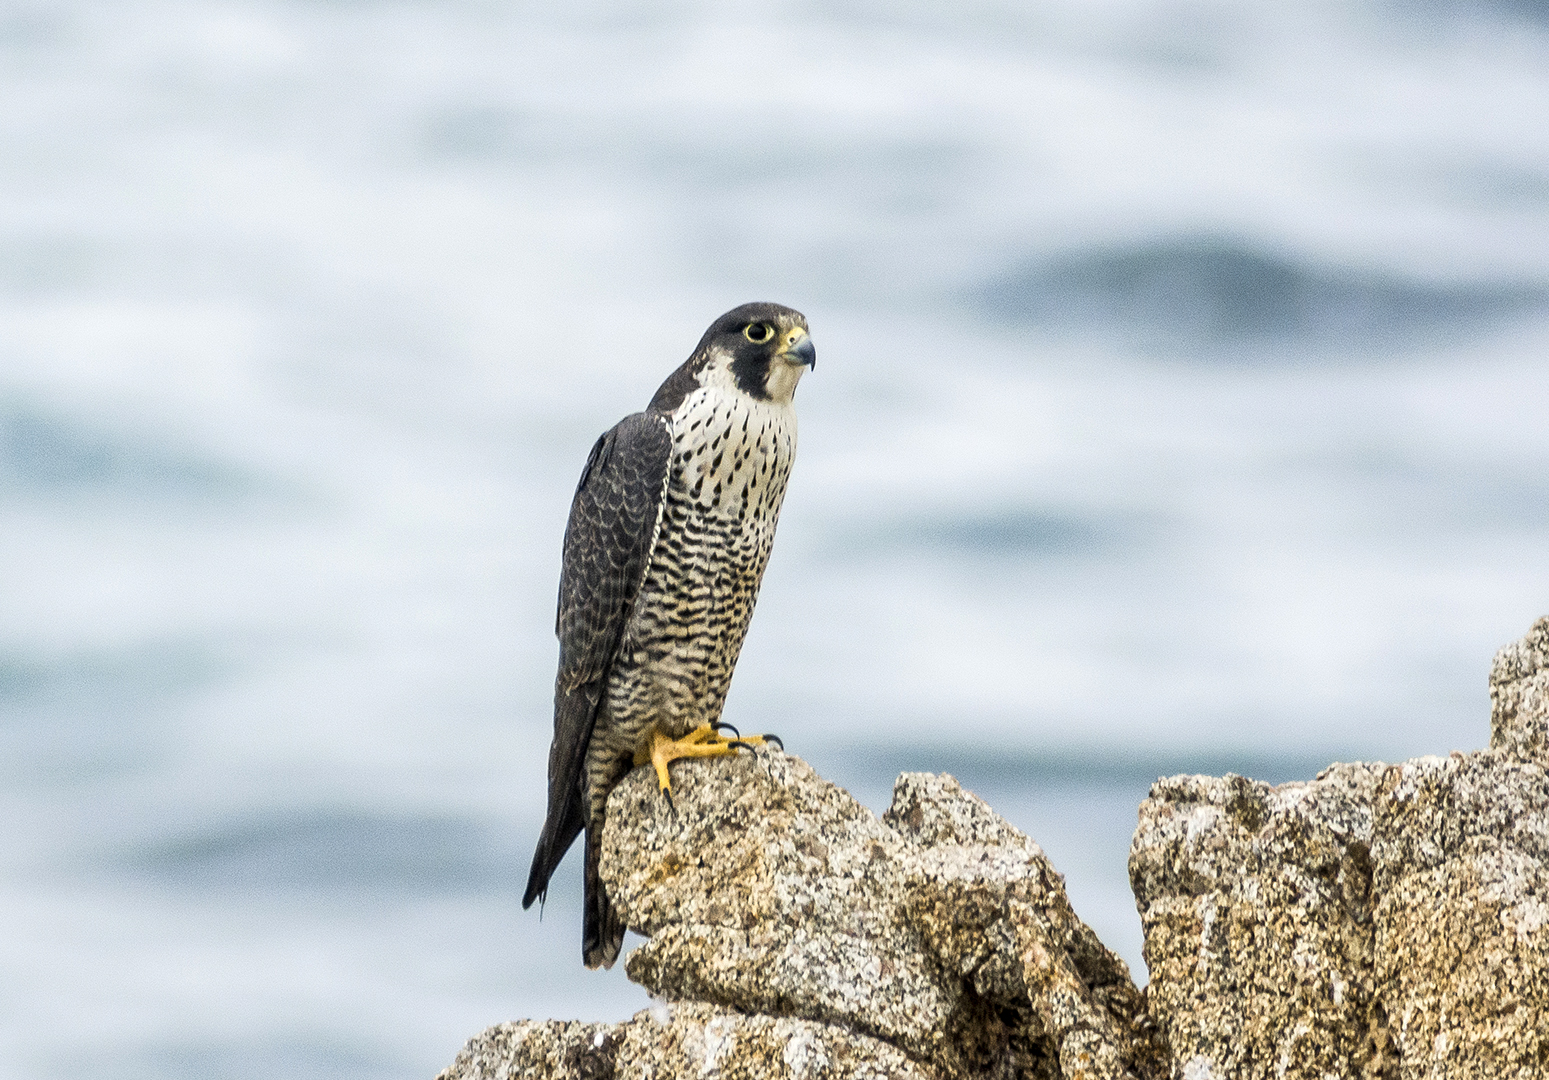 Pic. 5 : A beautiful peregrine falcon ( Falco peregrinus ) perches on a rocky sea cliff